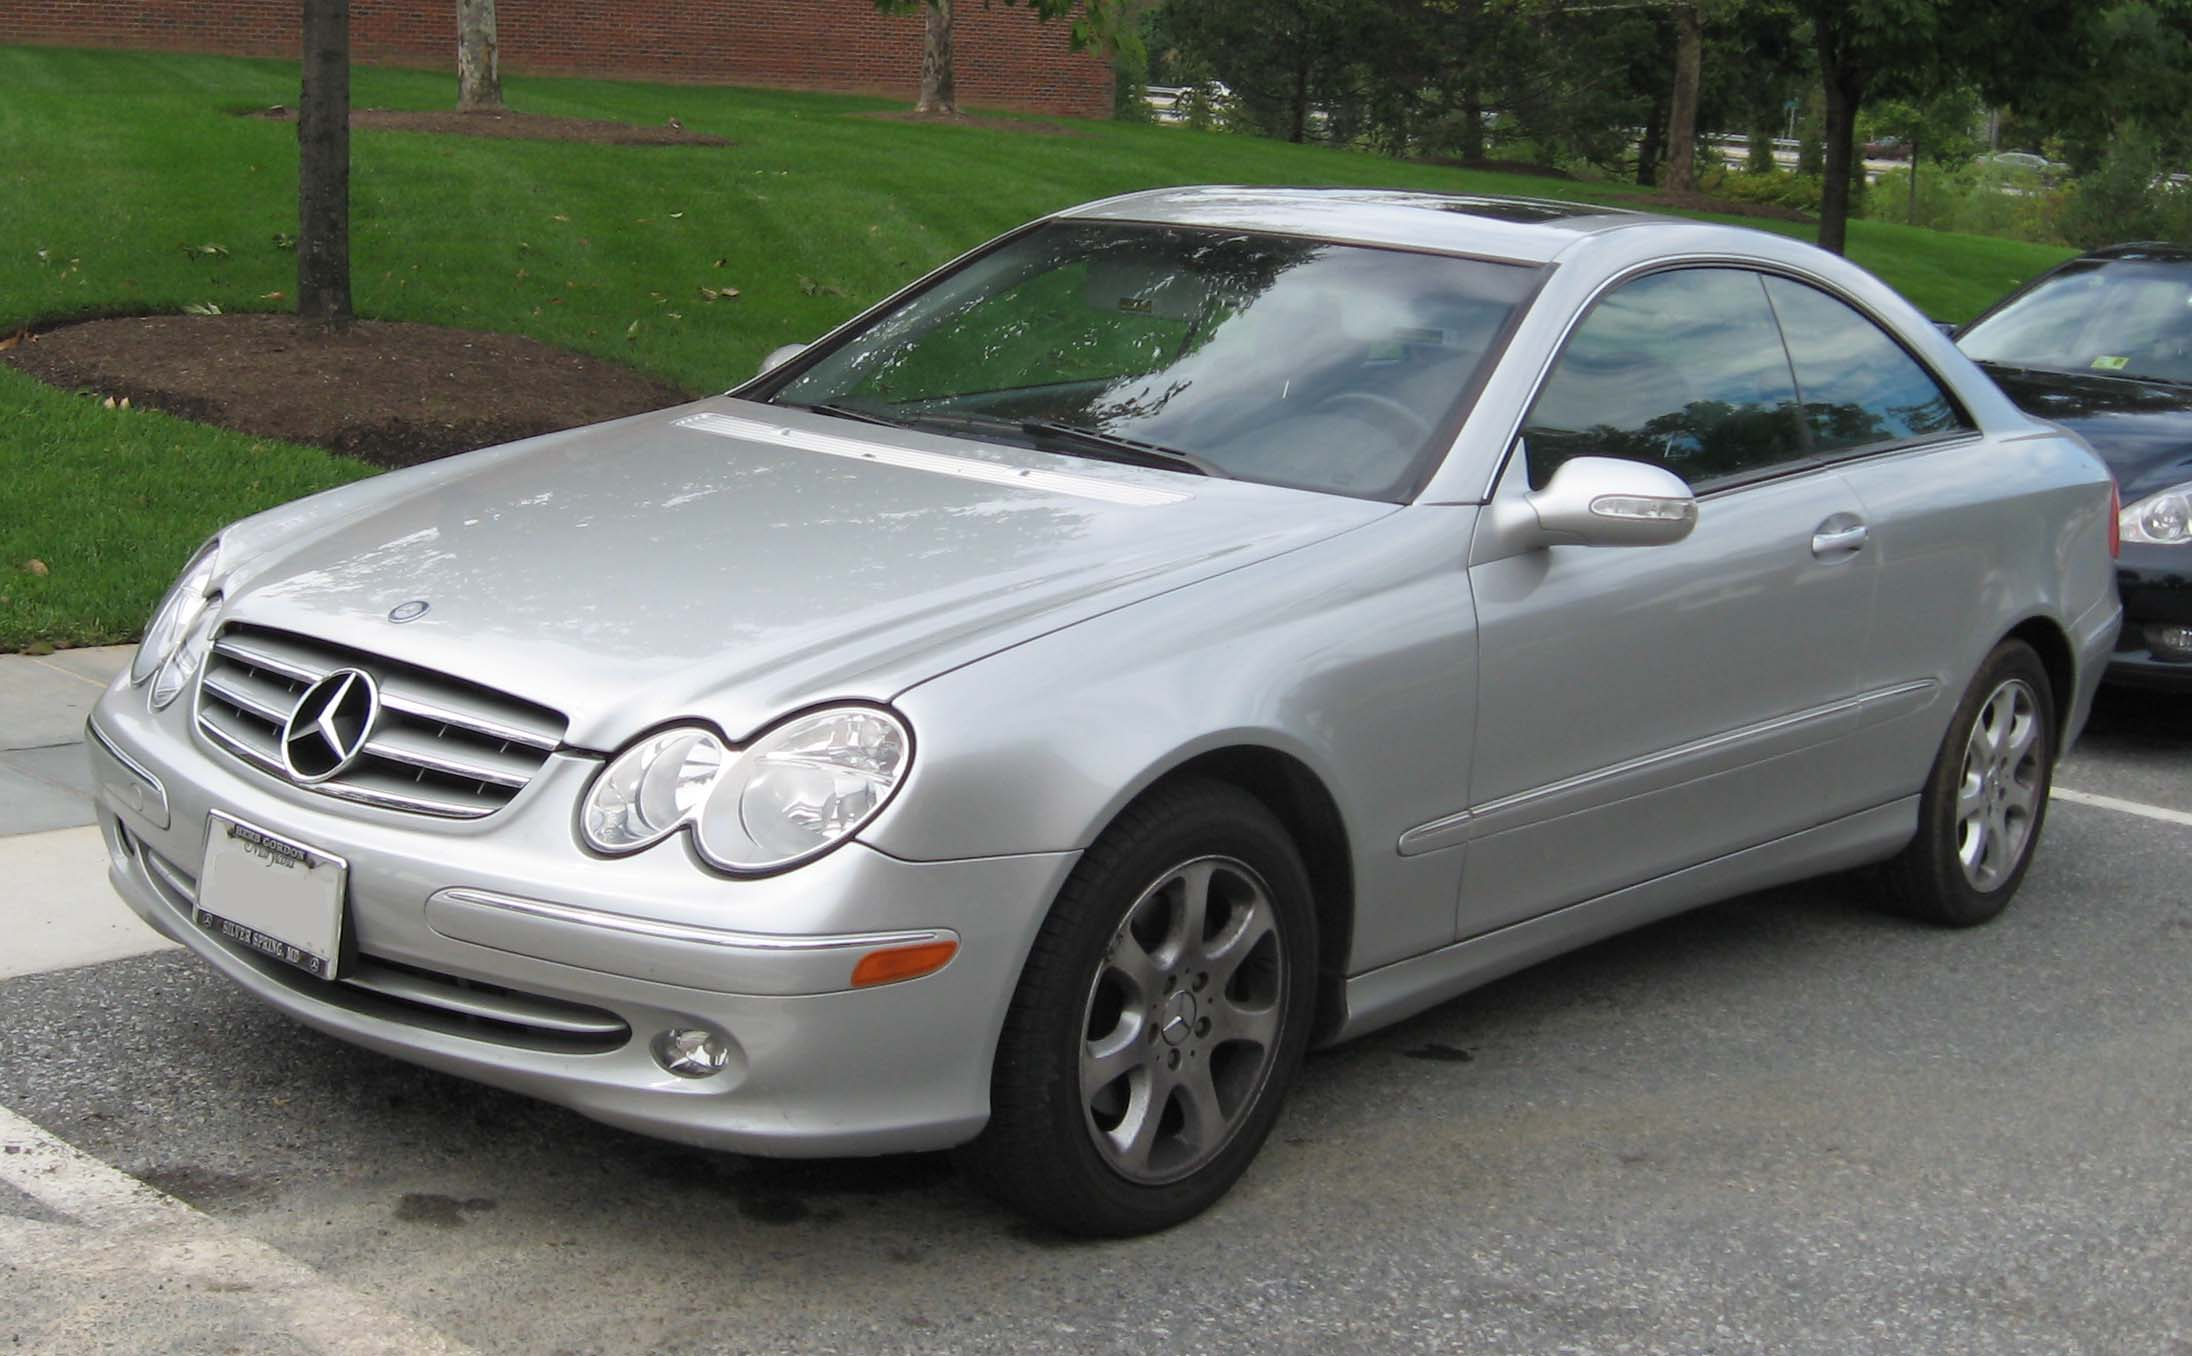 File:03-06 Mercedes-Benz